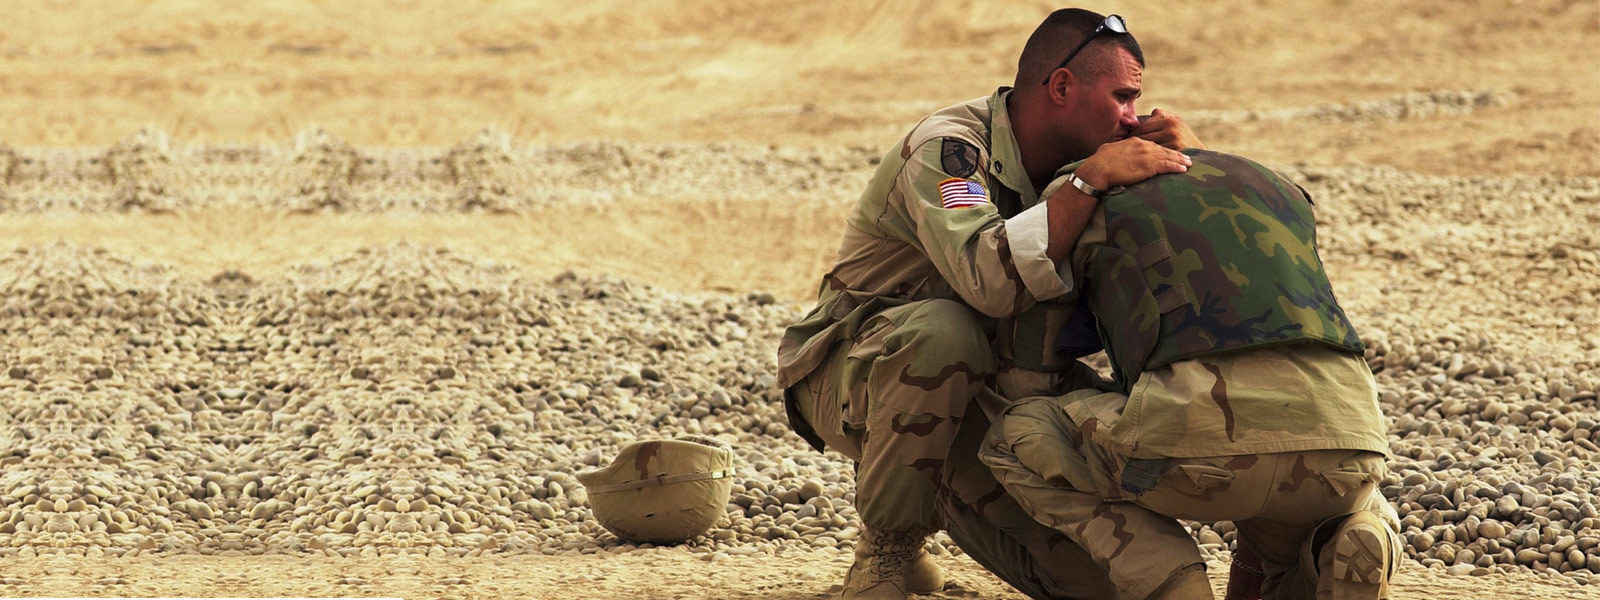 Please Join The Battle And Help Sponsor A Soldier To One Of Our Warrior Retreats Now... image